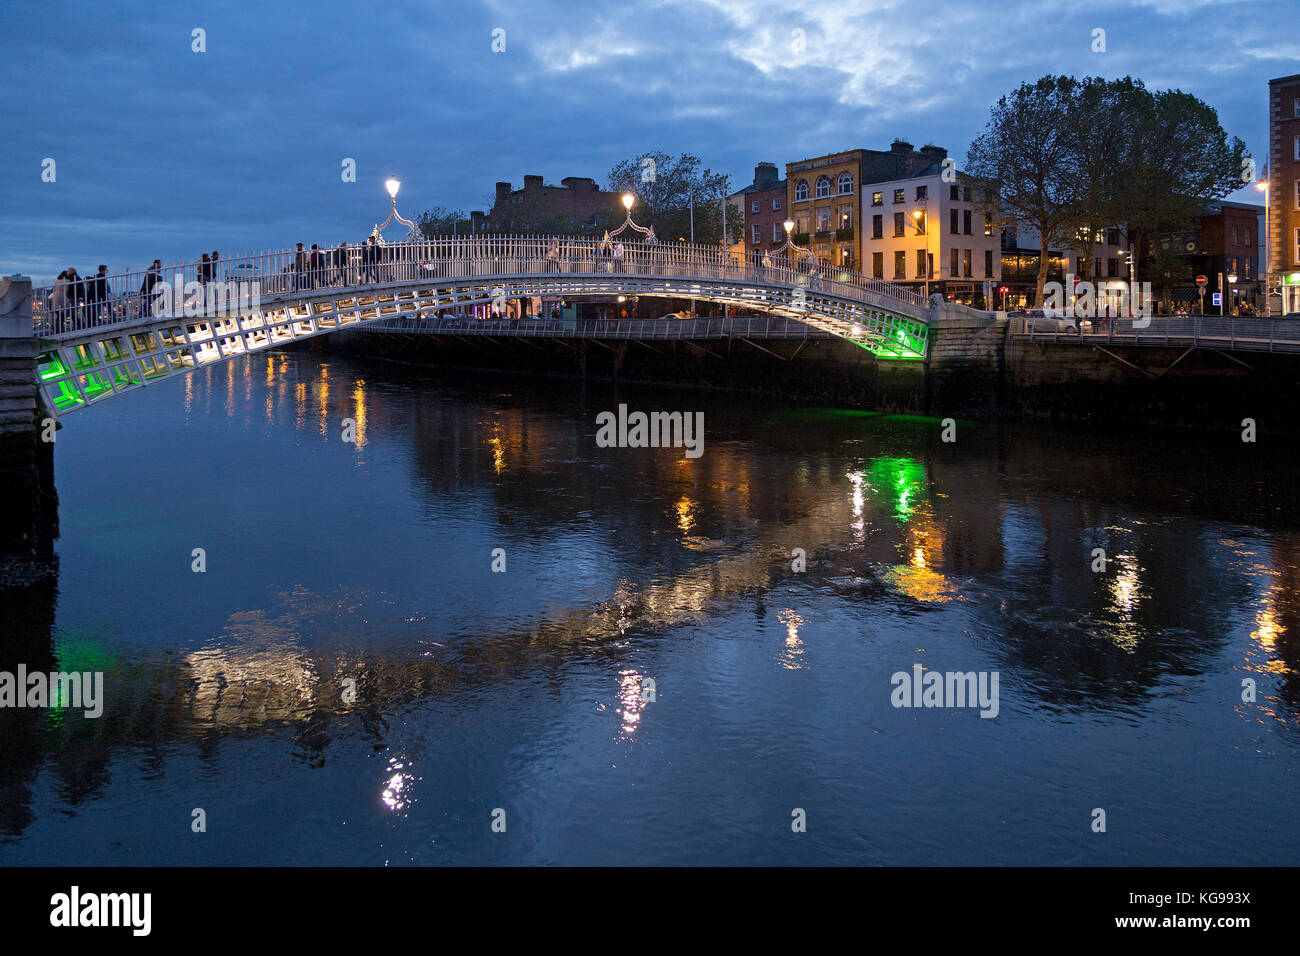 Halfpenny Bridge, Dublin, Ireland - Stock Image